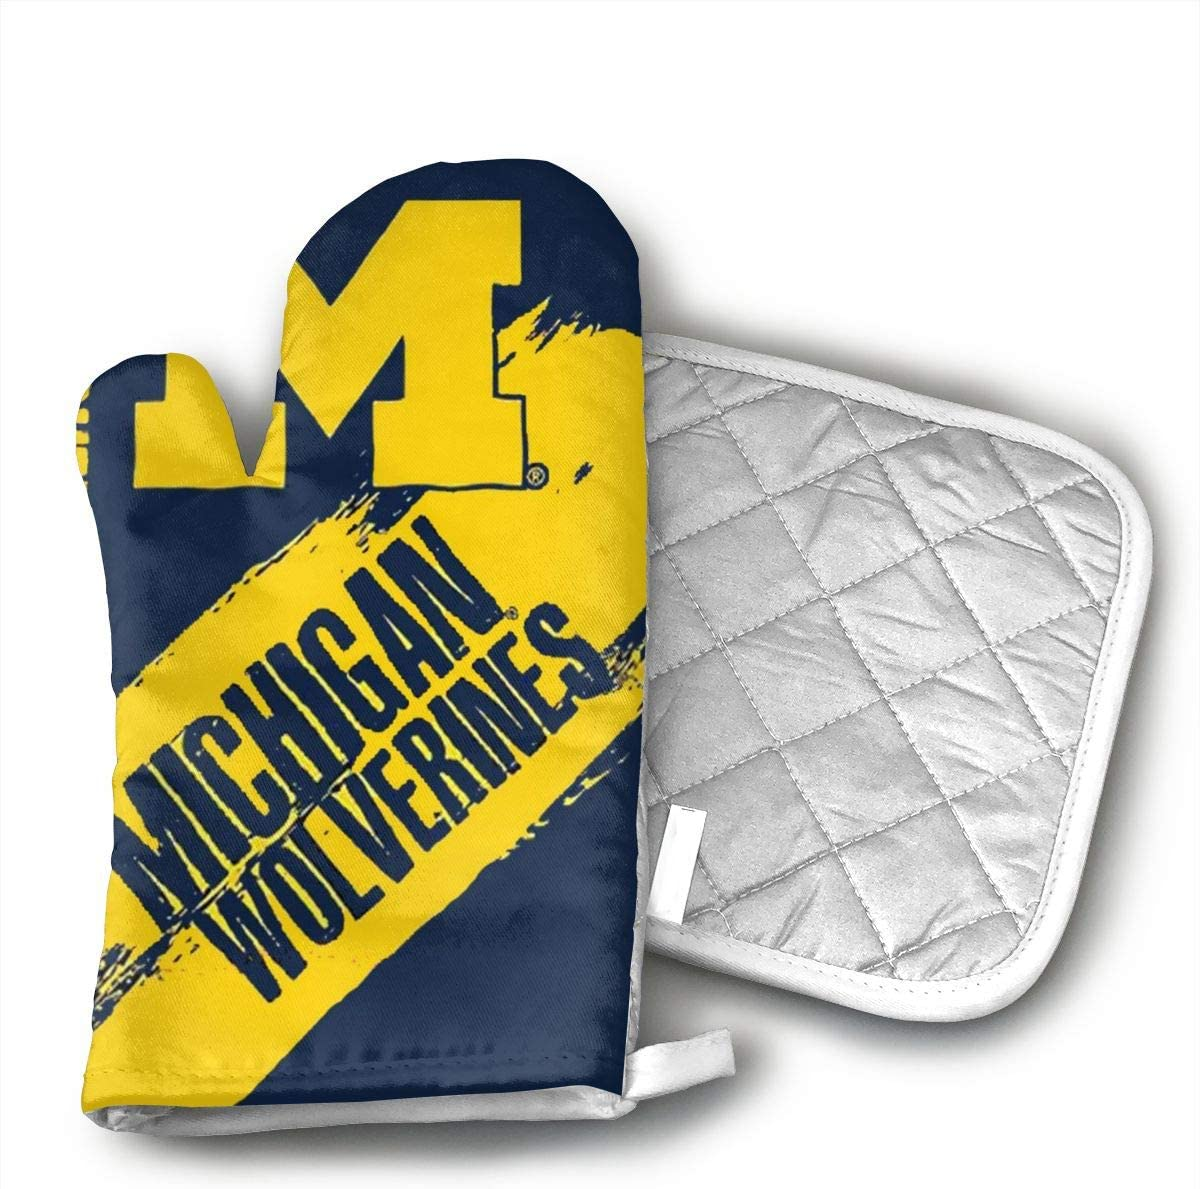 Michigan Wolverines Oven Mitts and Potholders (2-Piece Sets) - Kitchen Set with Cotton Heat Resistant,Oven Gloves for BBQ Cooking Baking Grilling